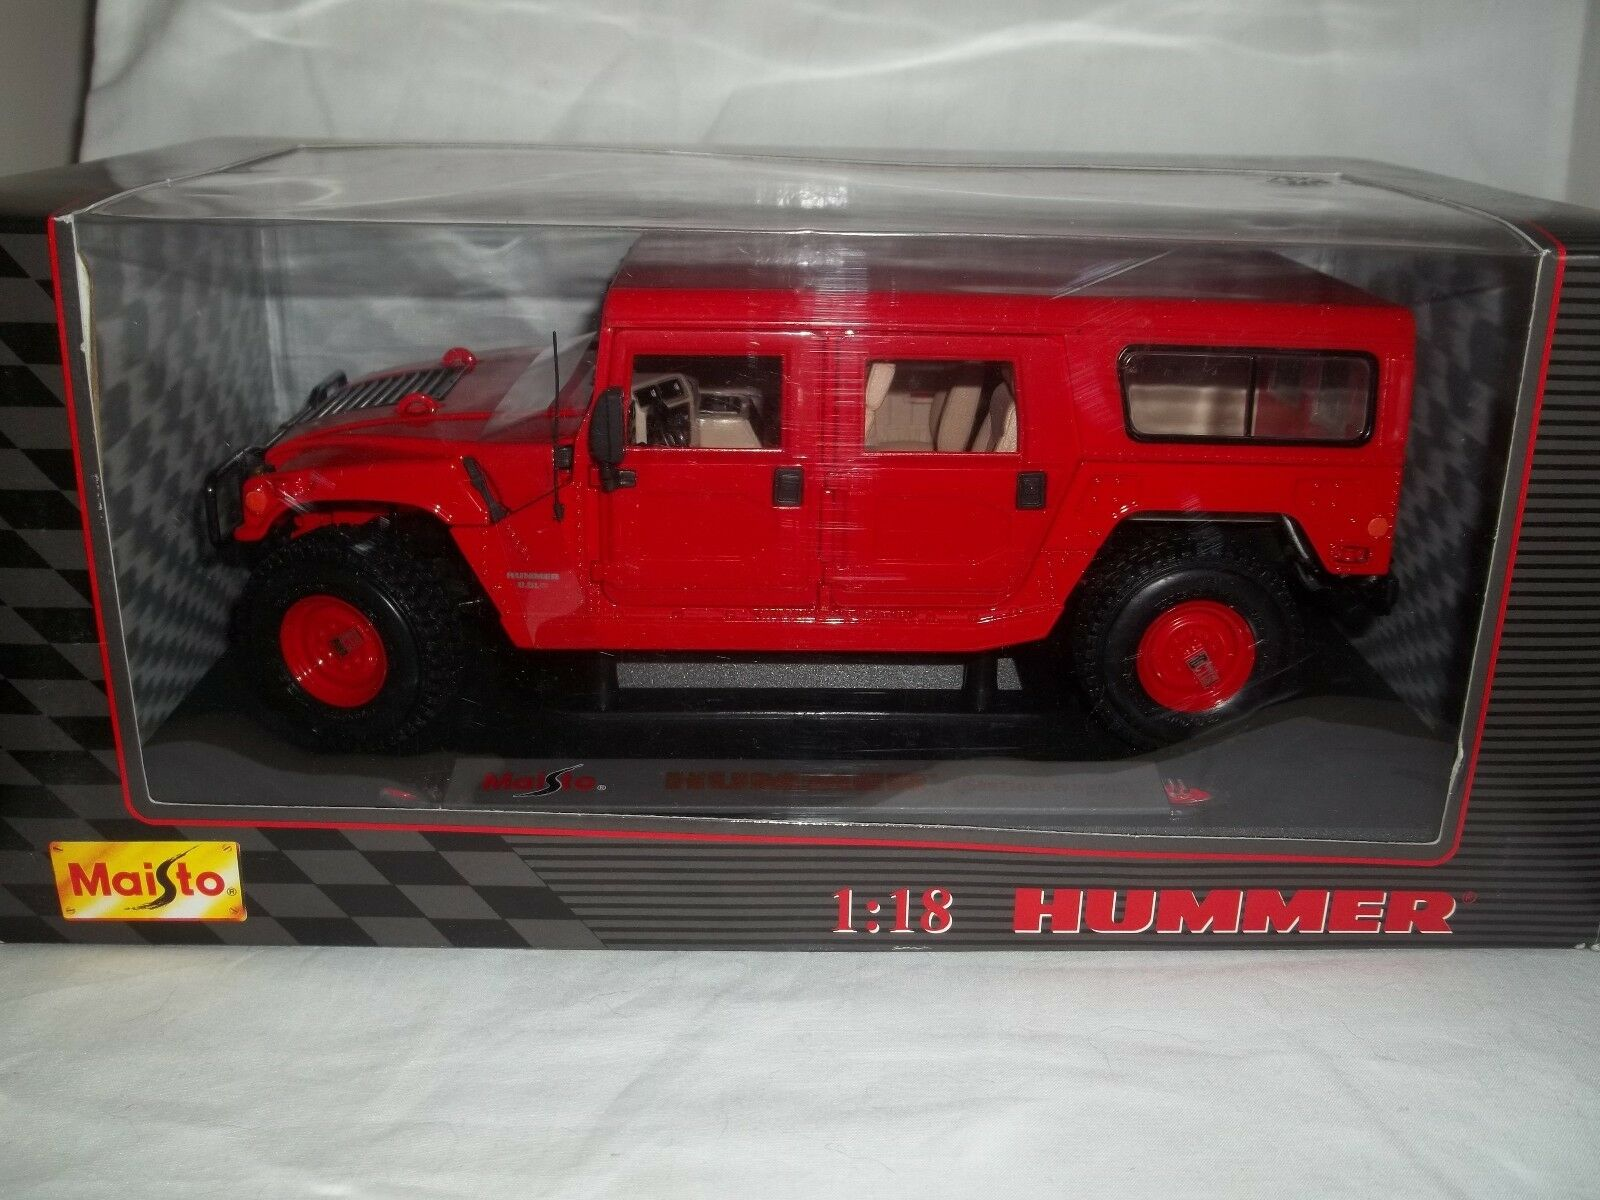 Maisto 31858 Hummer Station Wagon Red 1 18 Mint & Boxed